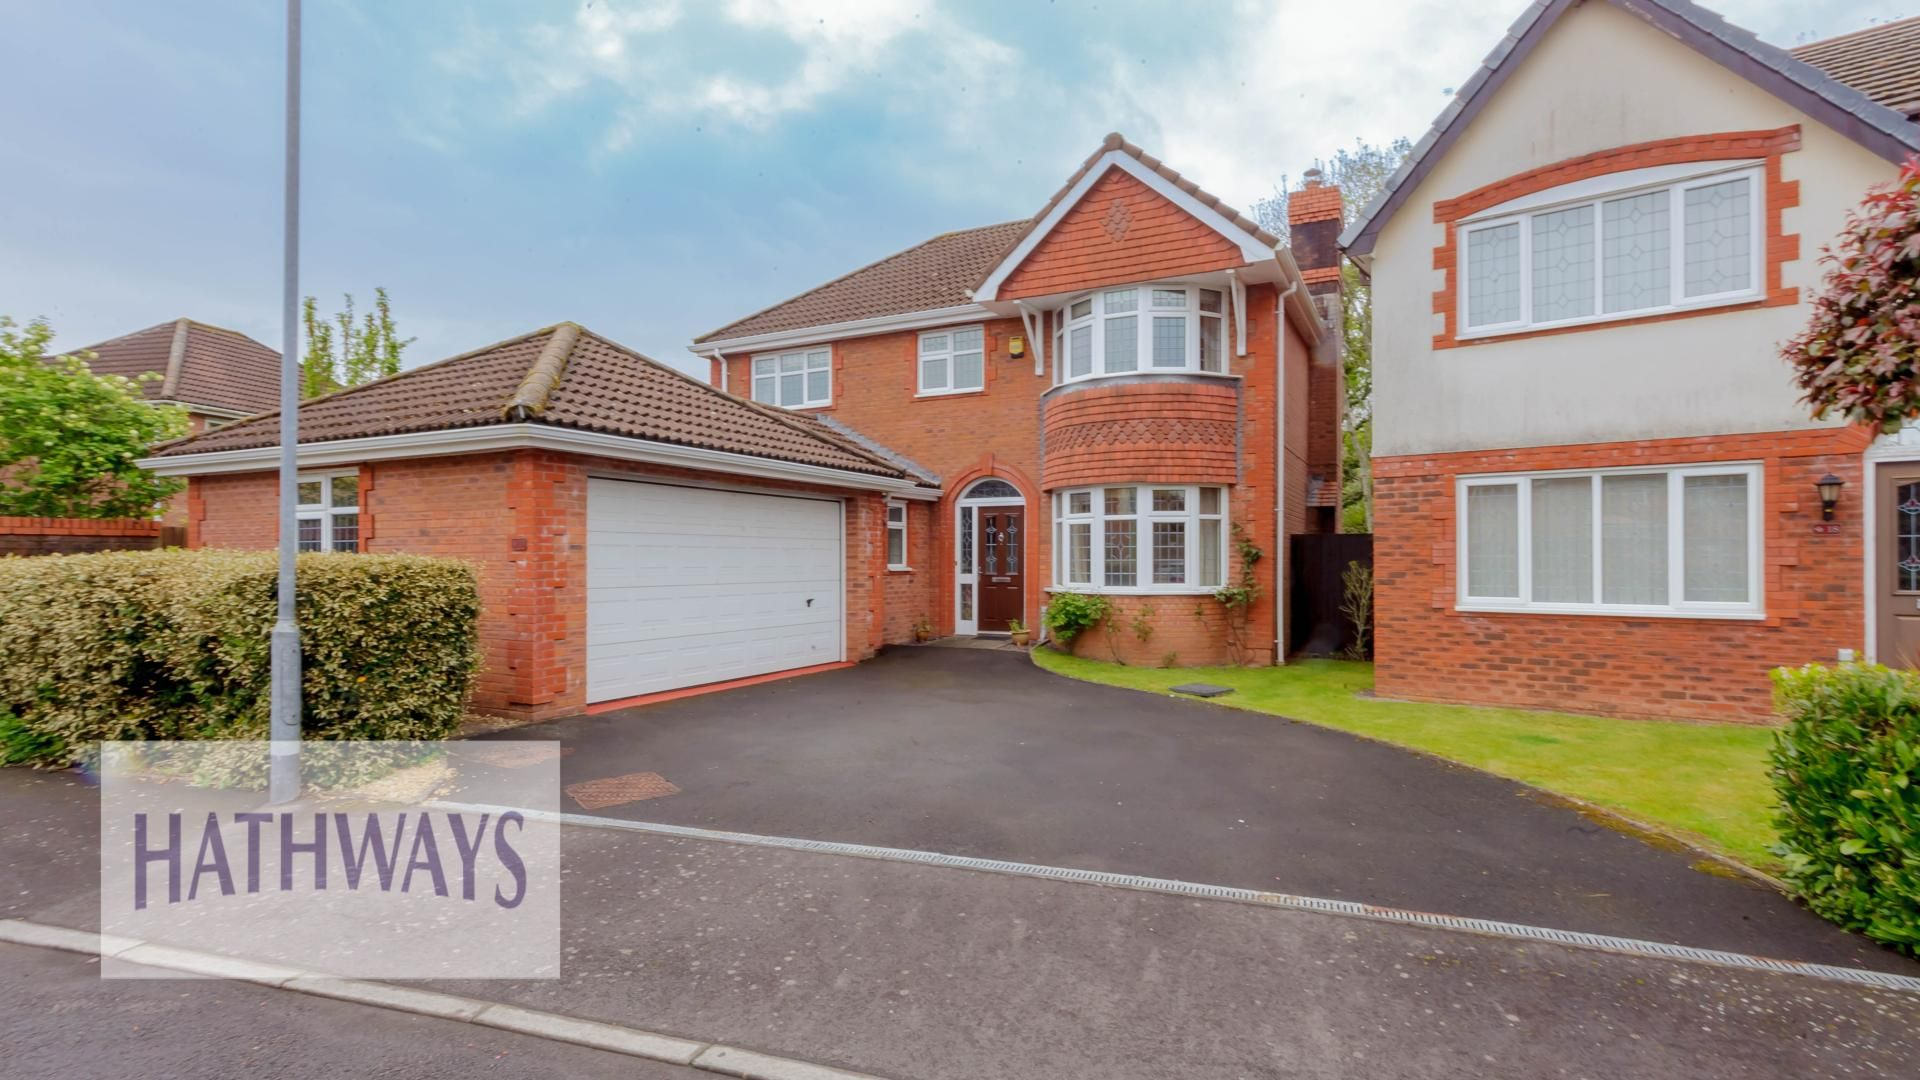 4 bed house for sale in Lansdowne Gardens, NP44